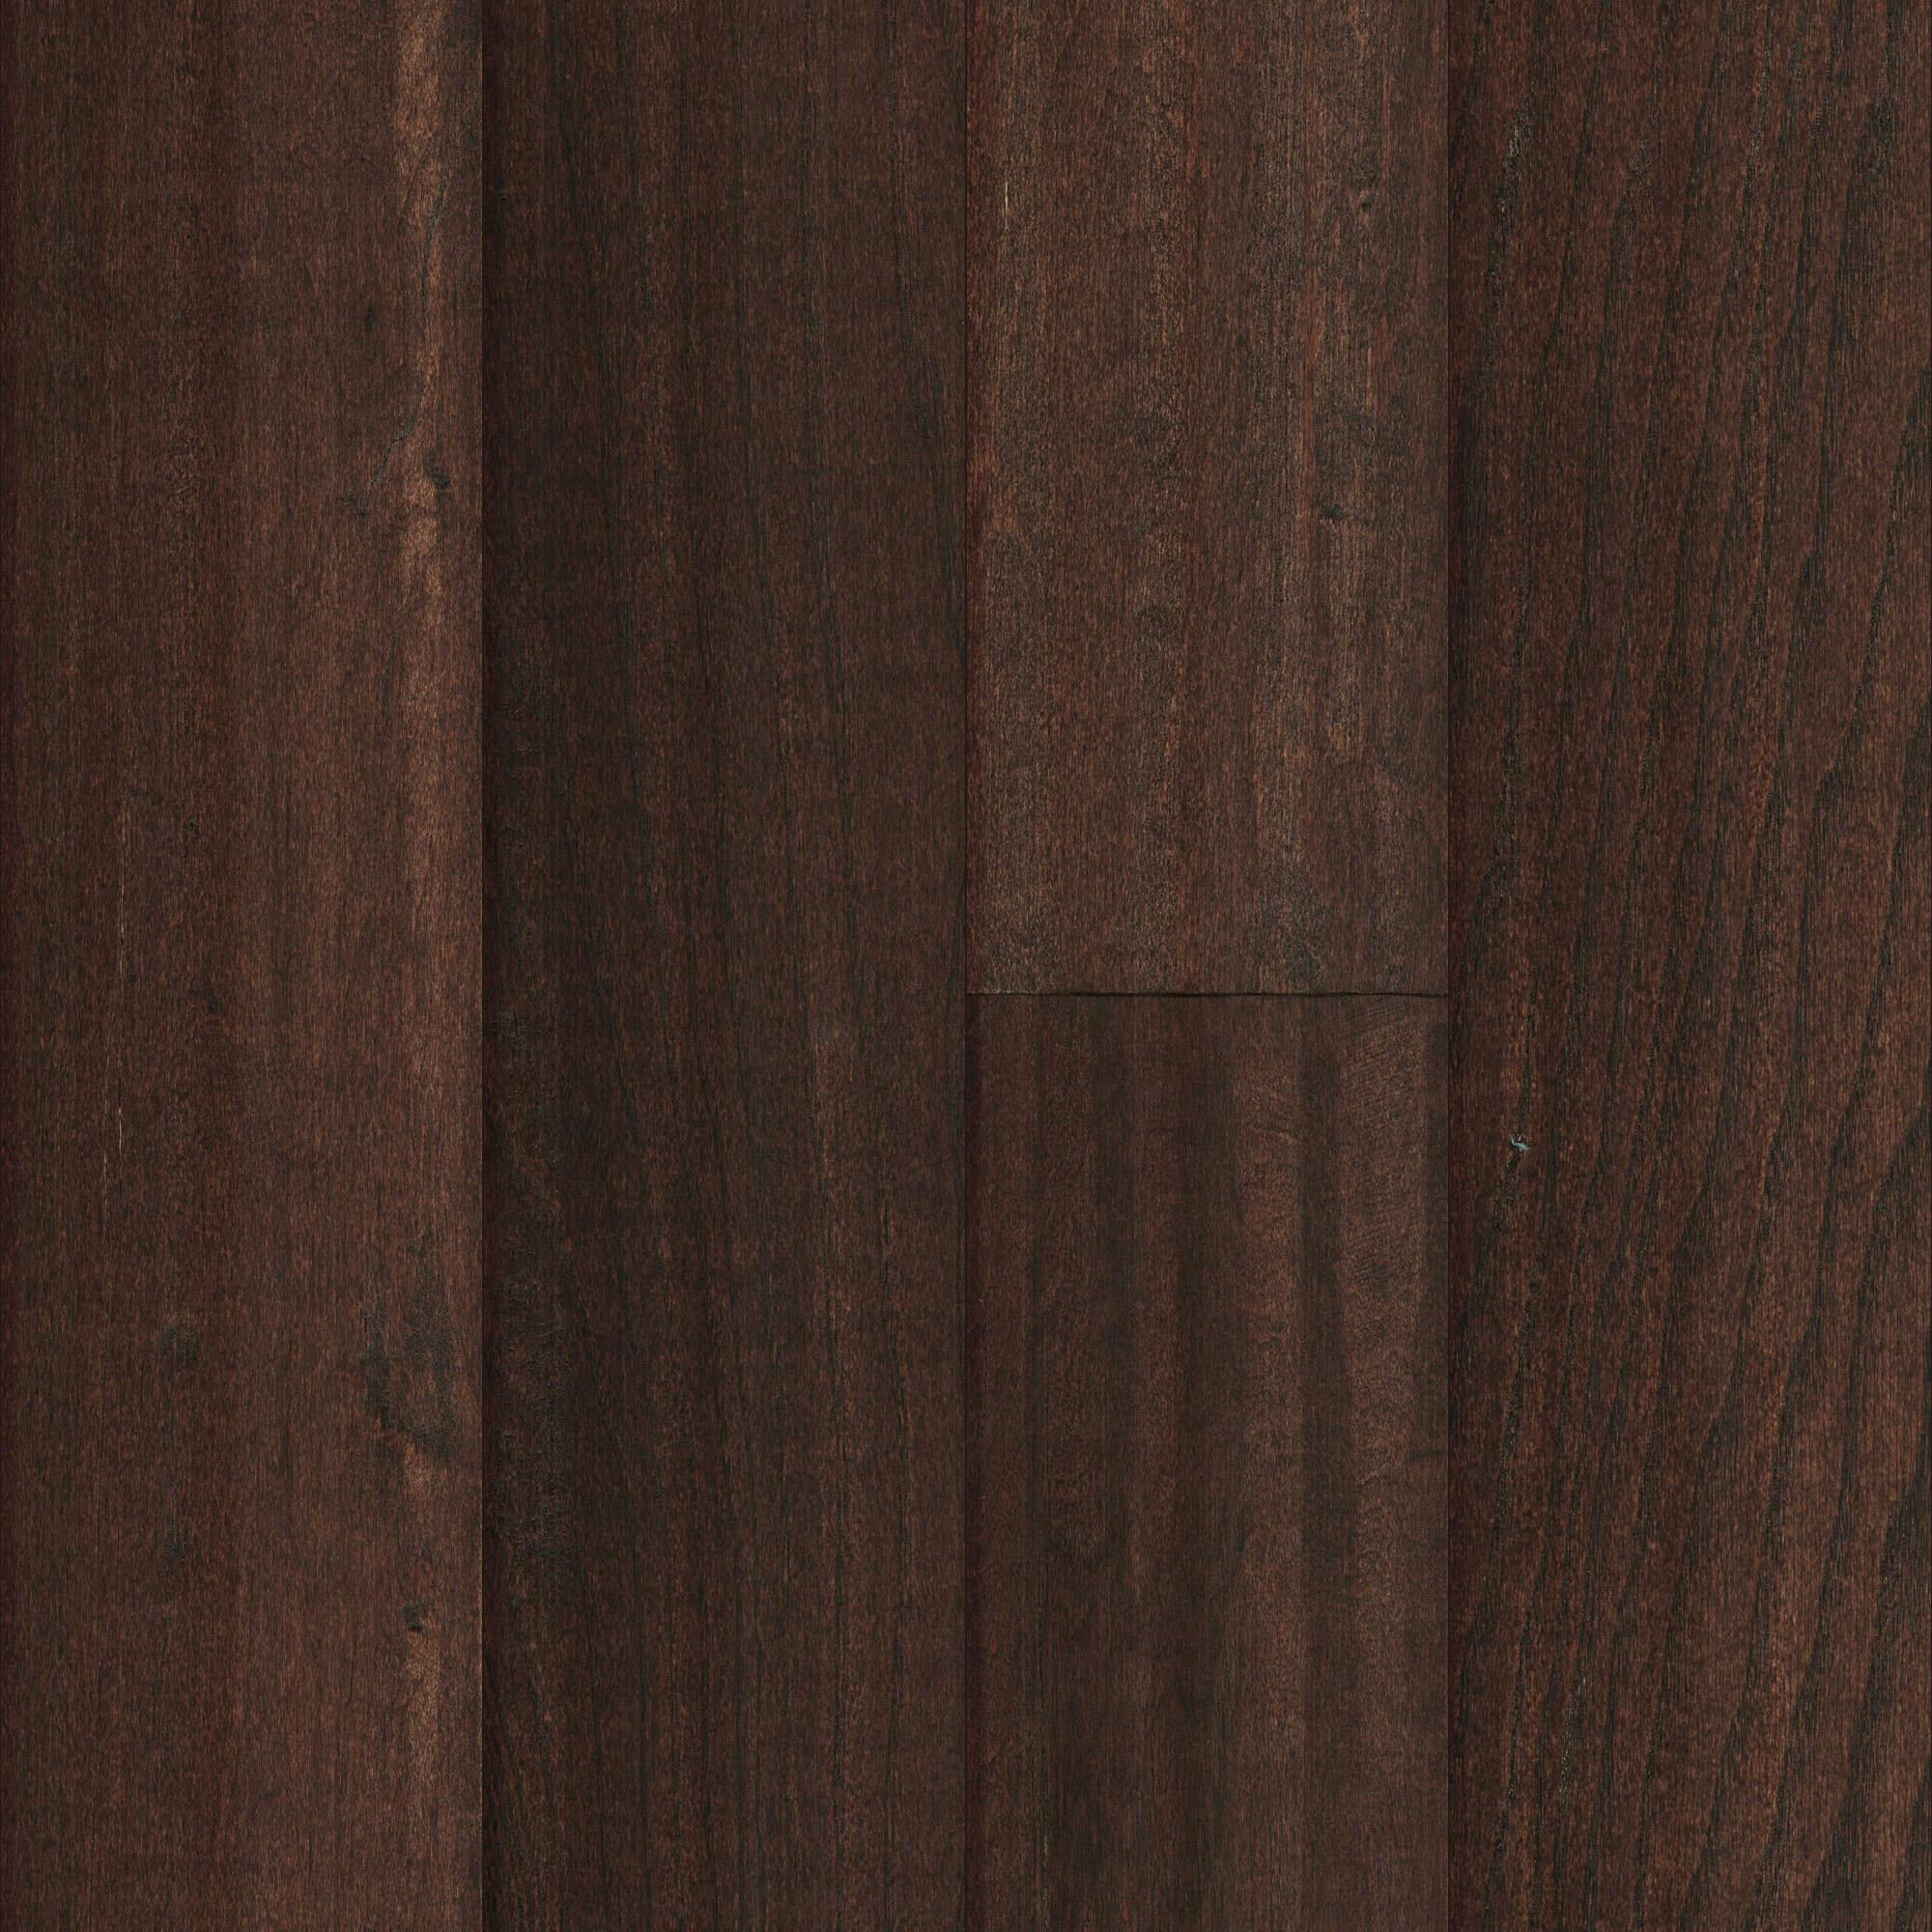 oak or maple hardwood floors which is better of mullican lincolnshire sculpted maple cappuccino 5 engineered intended for mullican lincolnshire sculpted maple cappuccino 5 engineered hardwood flooring